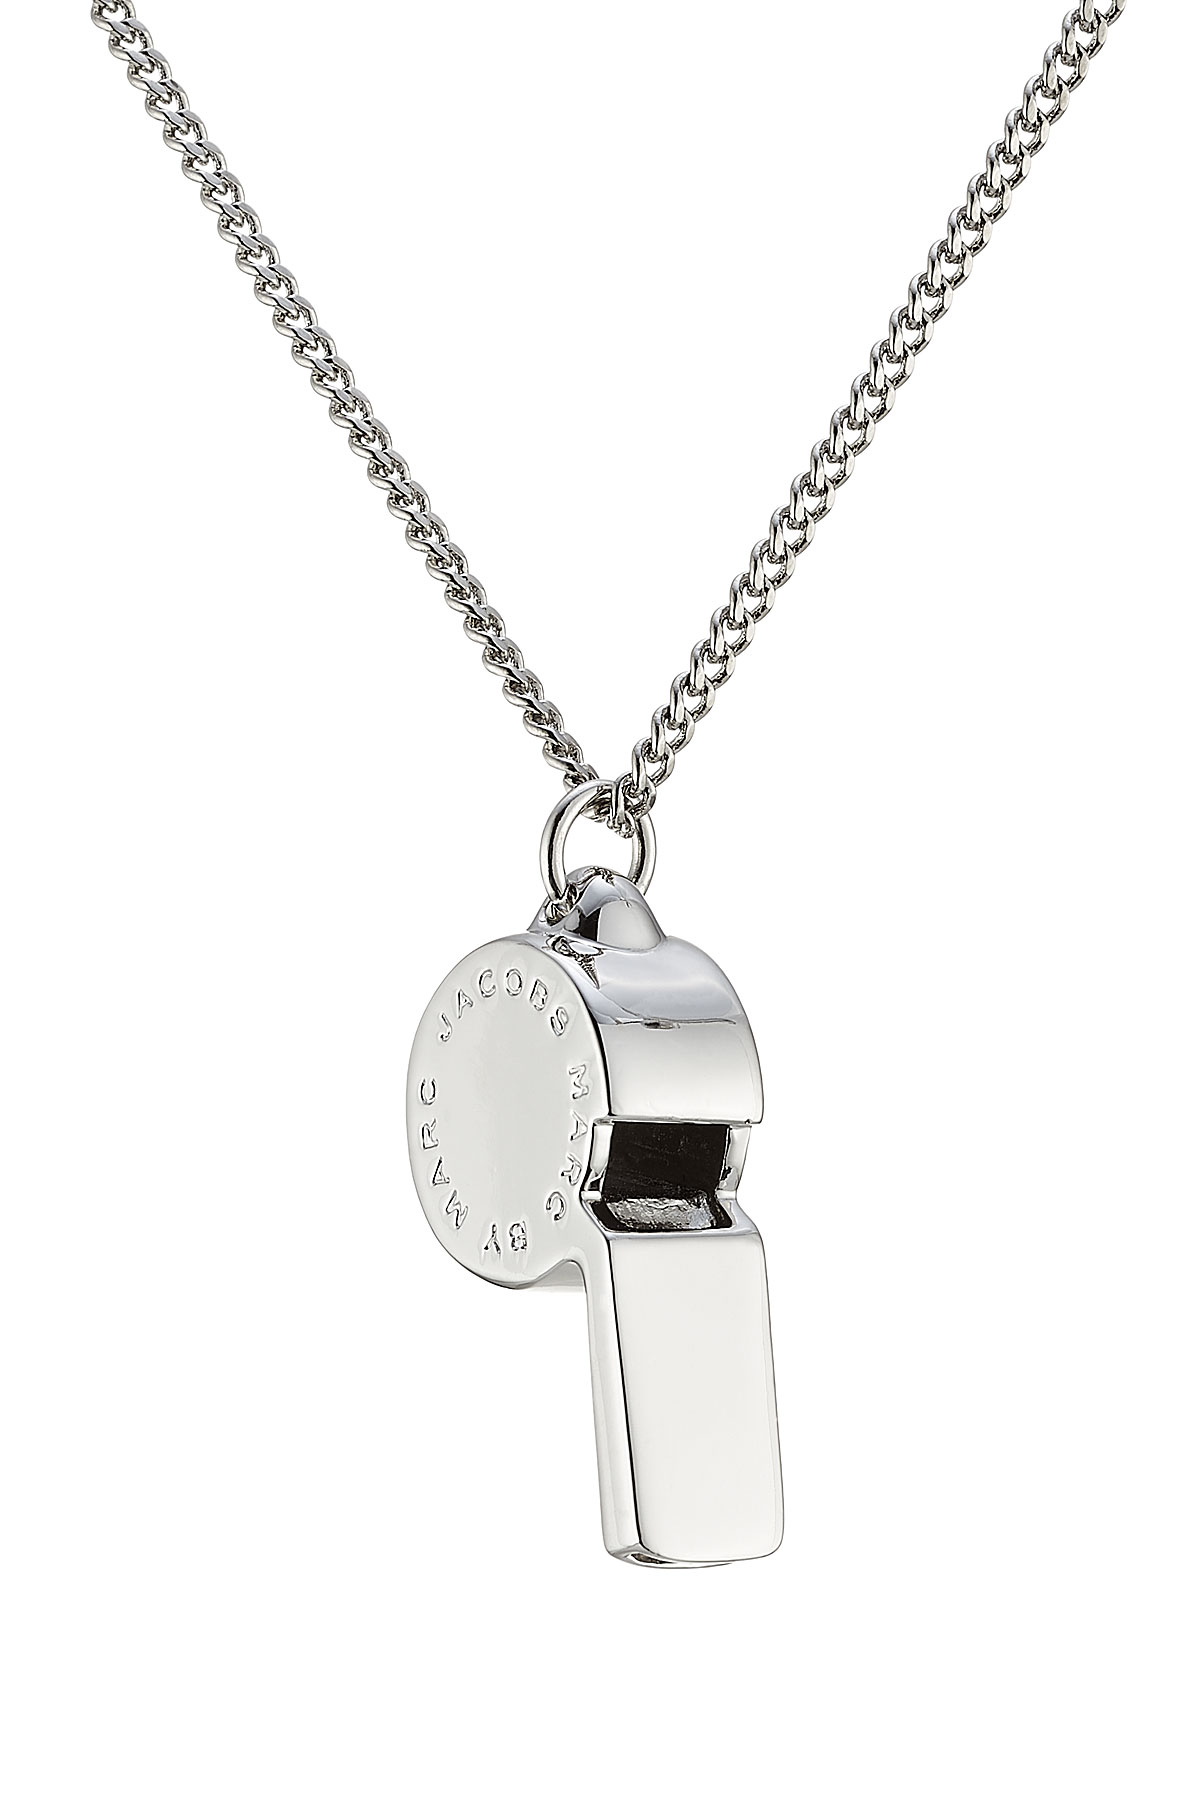 claire crystal necklace whistle us s silver chain